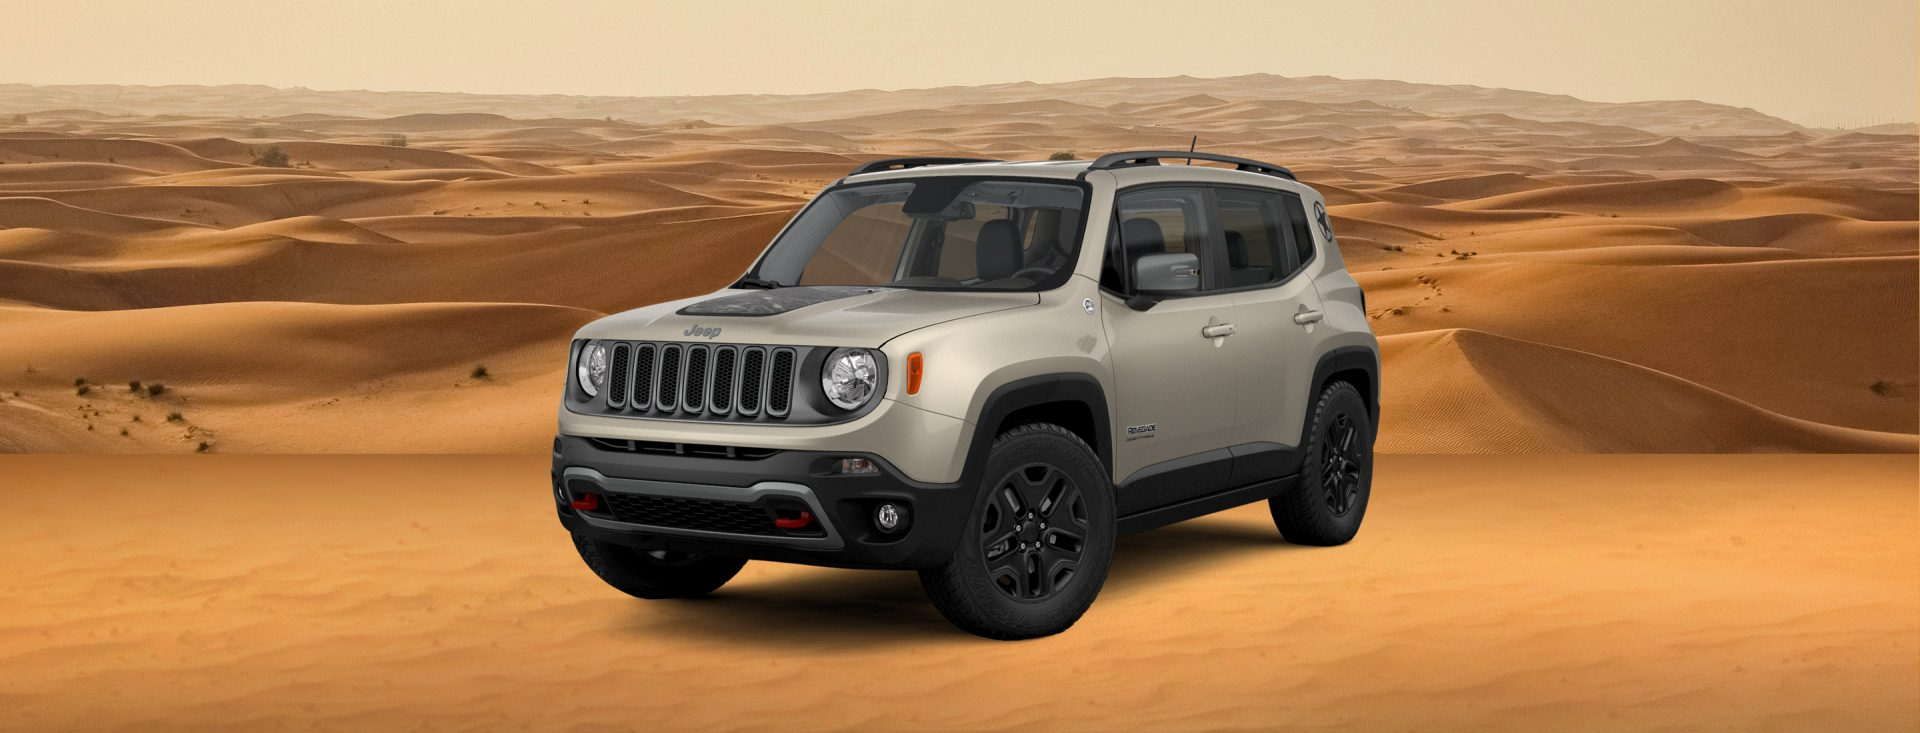 jeep shows out at the 2017 north american international auto show. Black Bedroom Furniture Sets. Home Design Ideas